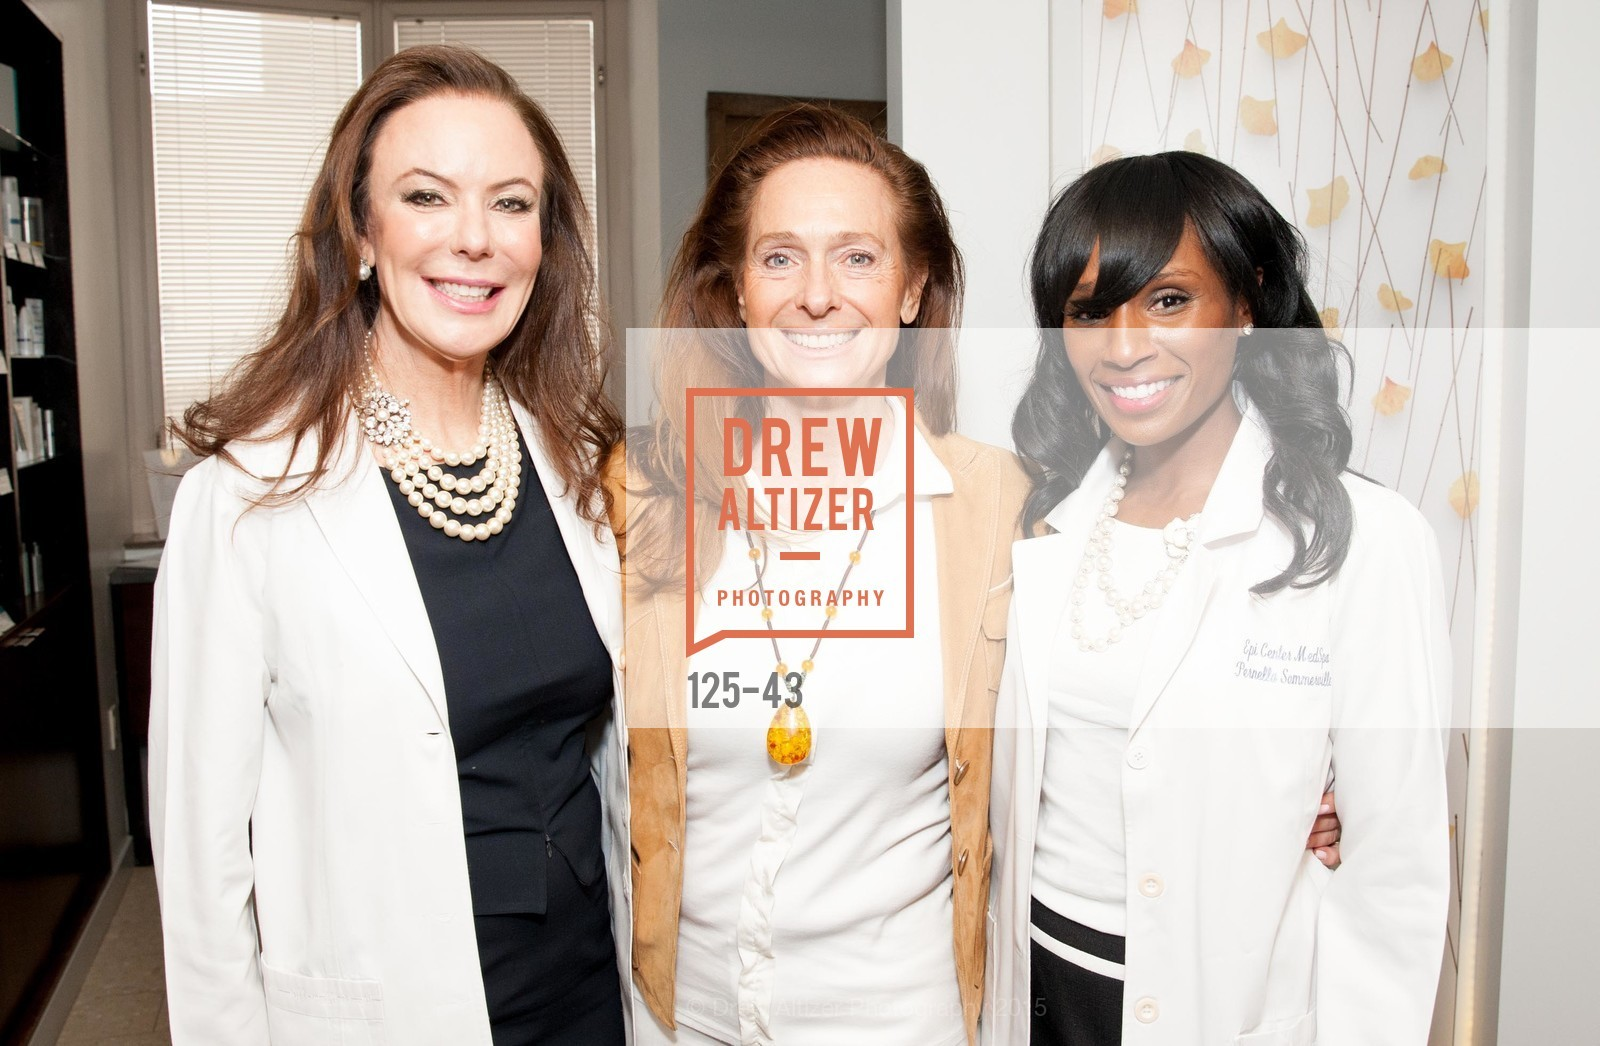 Margaret Mitchell, Elisabeth Thieriot, Pernella Sommerville, EPI CENTER MedSpa Anniversary and Launch of REPLETE, Epi Center MedSpa, April 21st, 2015,Drew Altizer, Drew Altizer Photography, full-service agency, private events, San Francisco photographer, photographer california